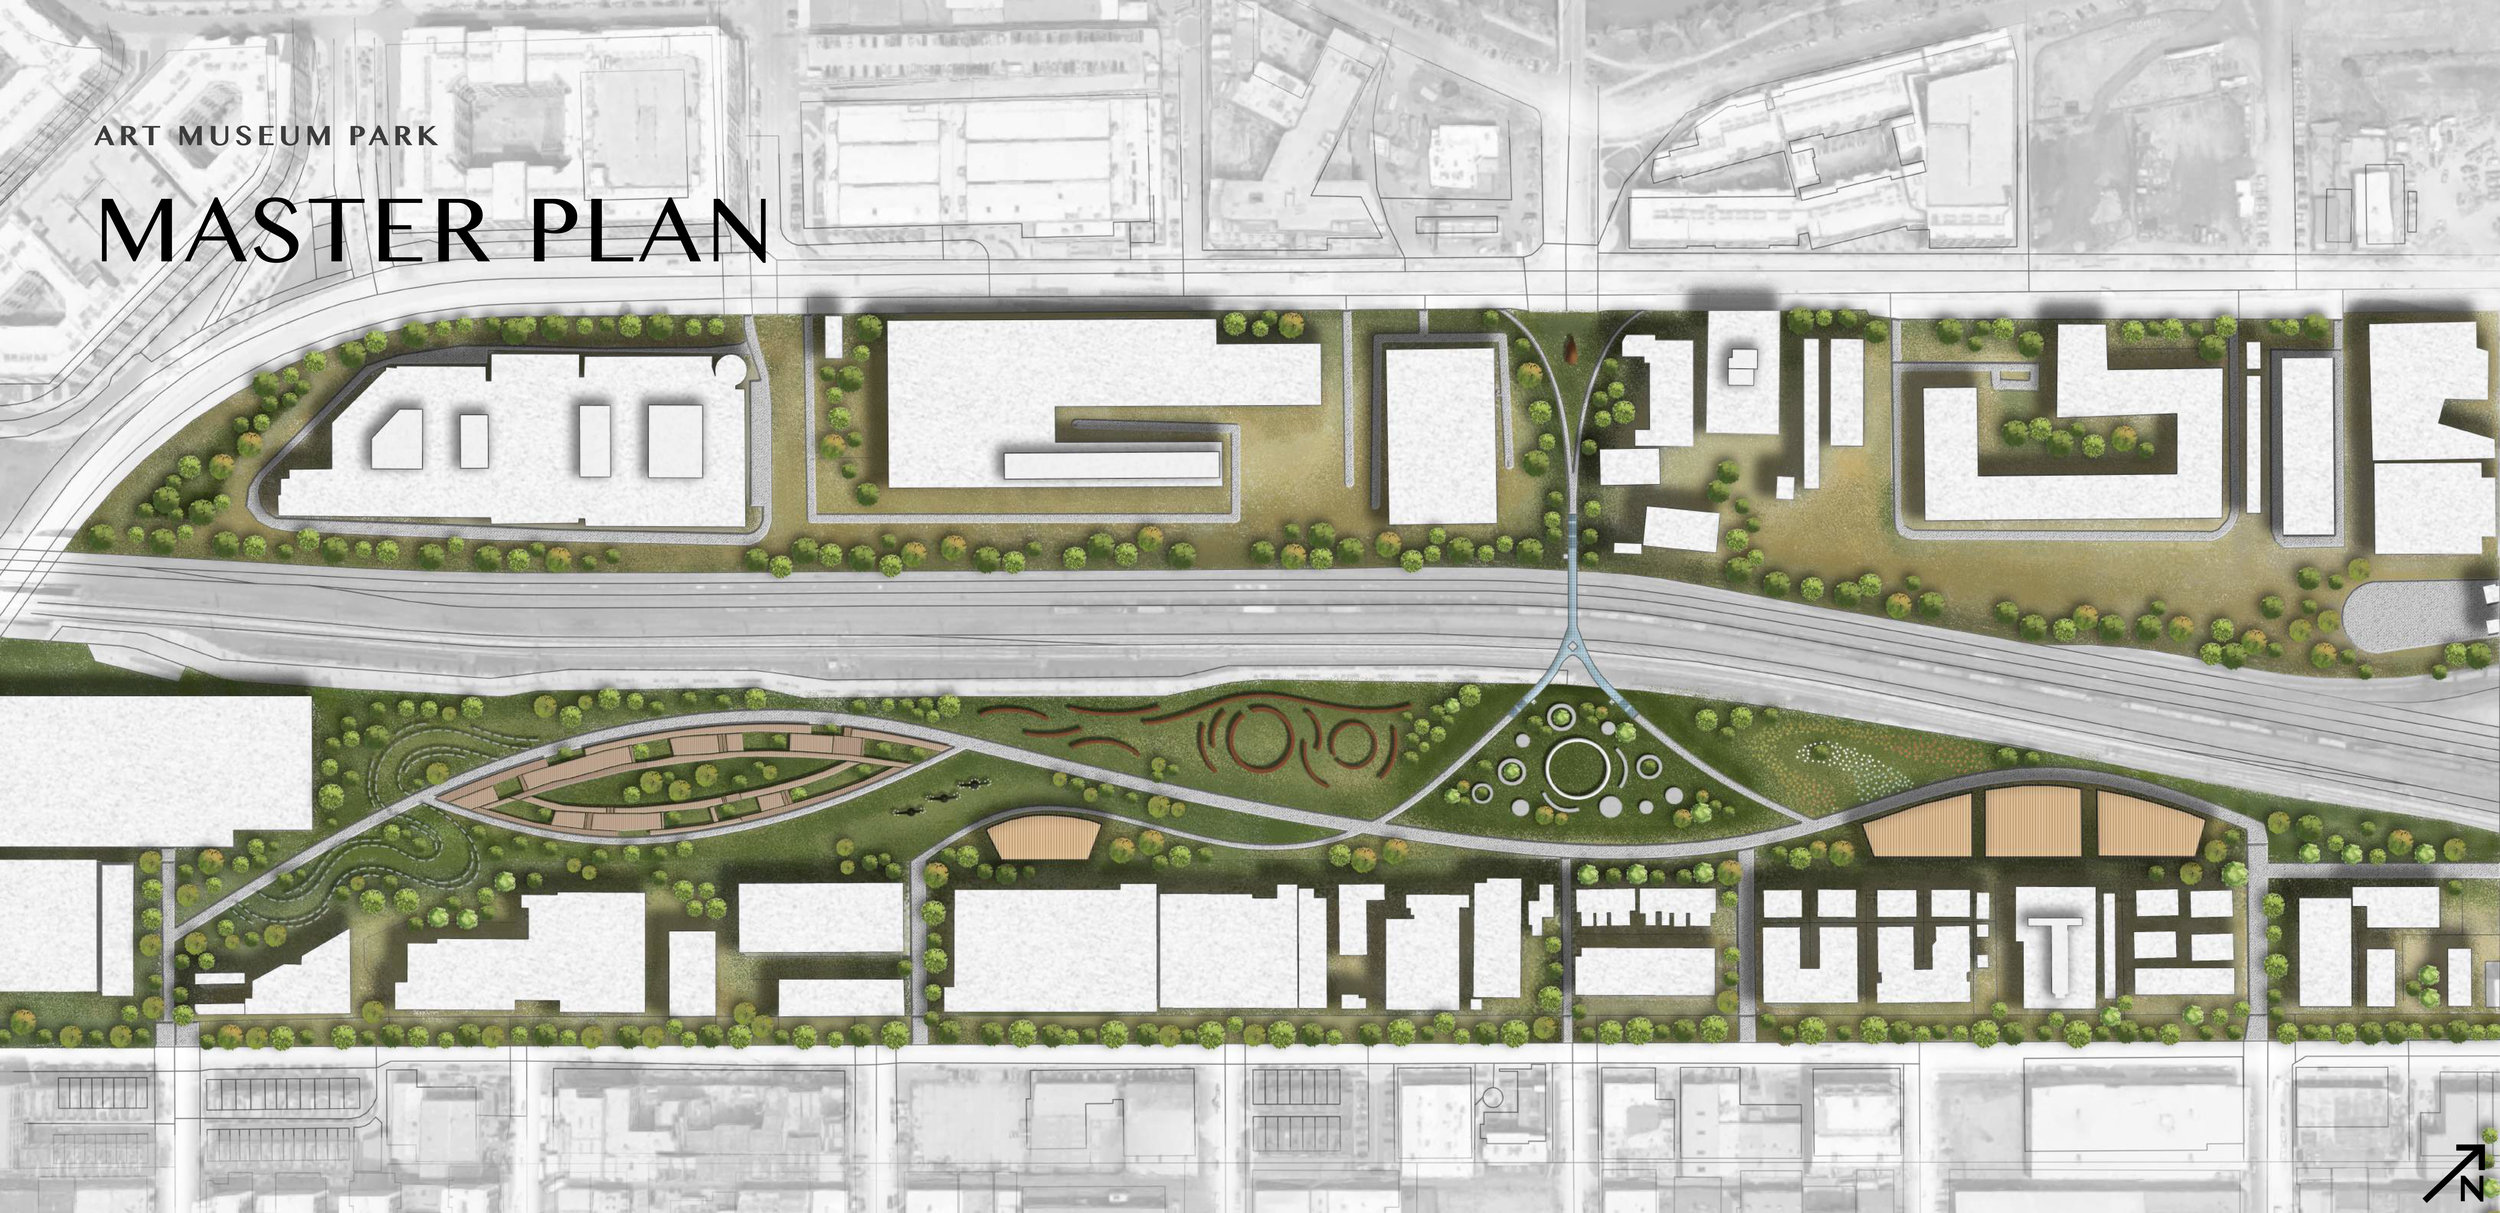 Wei Wang  (ENVD 3100 - Fall 2018): Master plan for a proposed Art Museum Park in the RiNo Art District, Denver